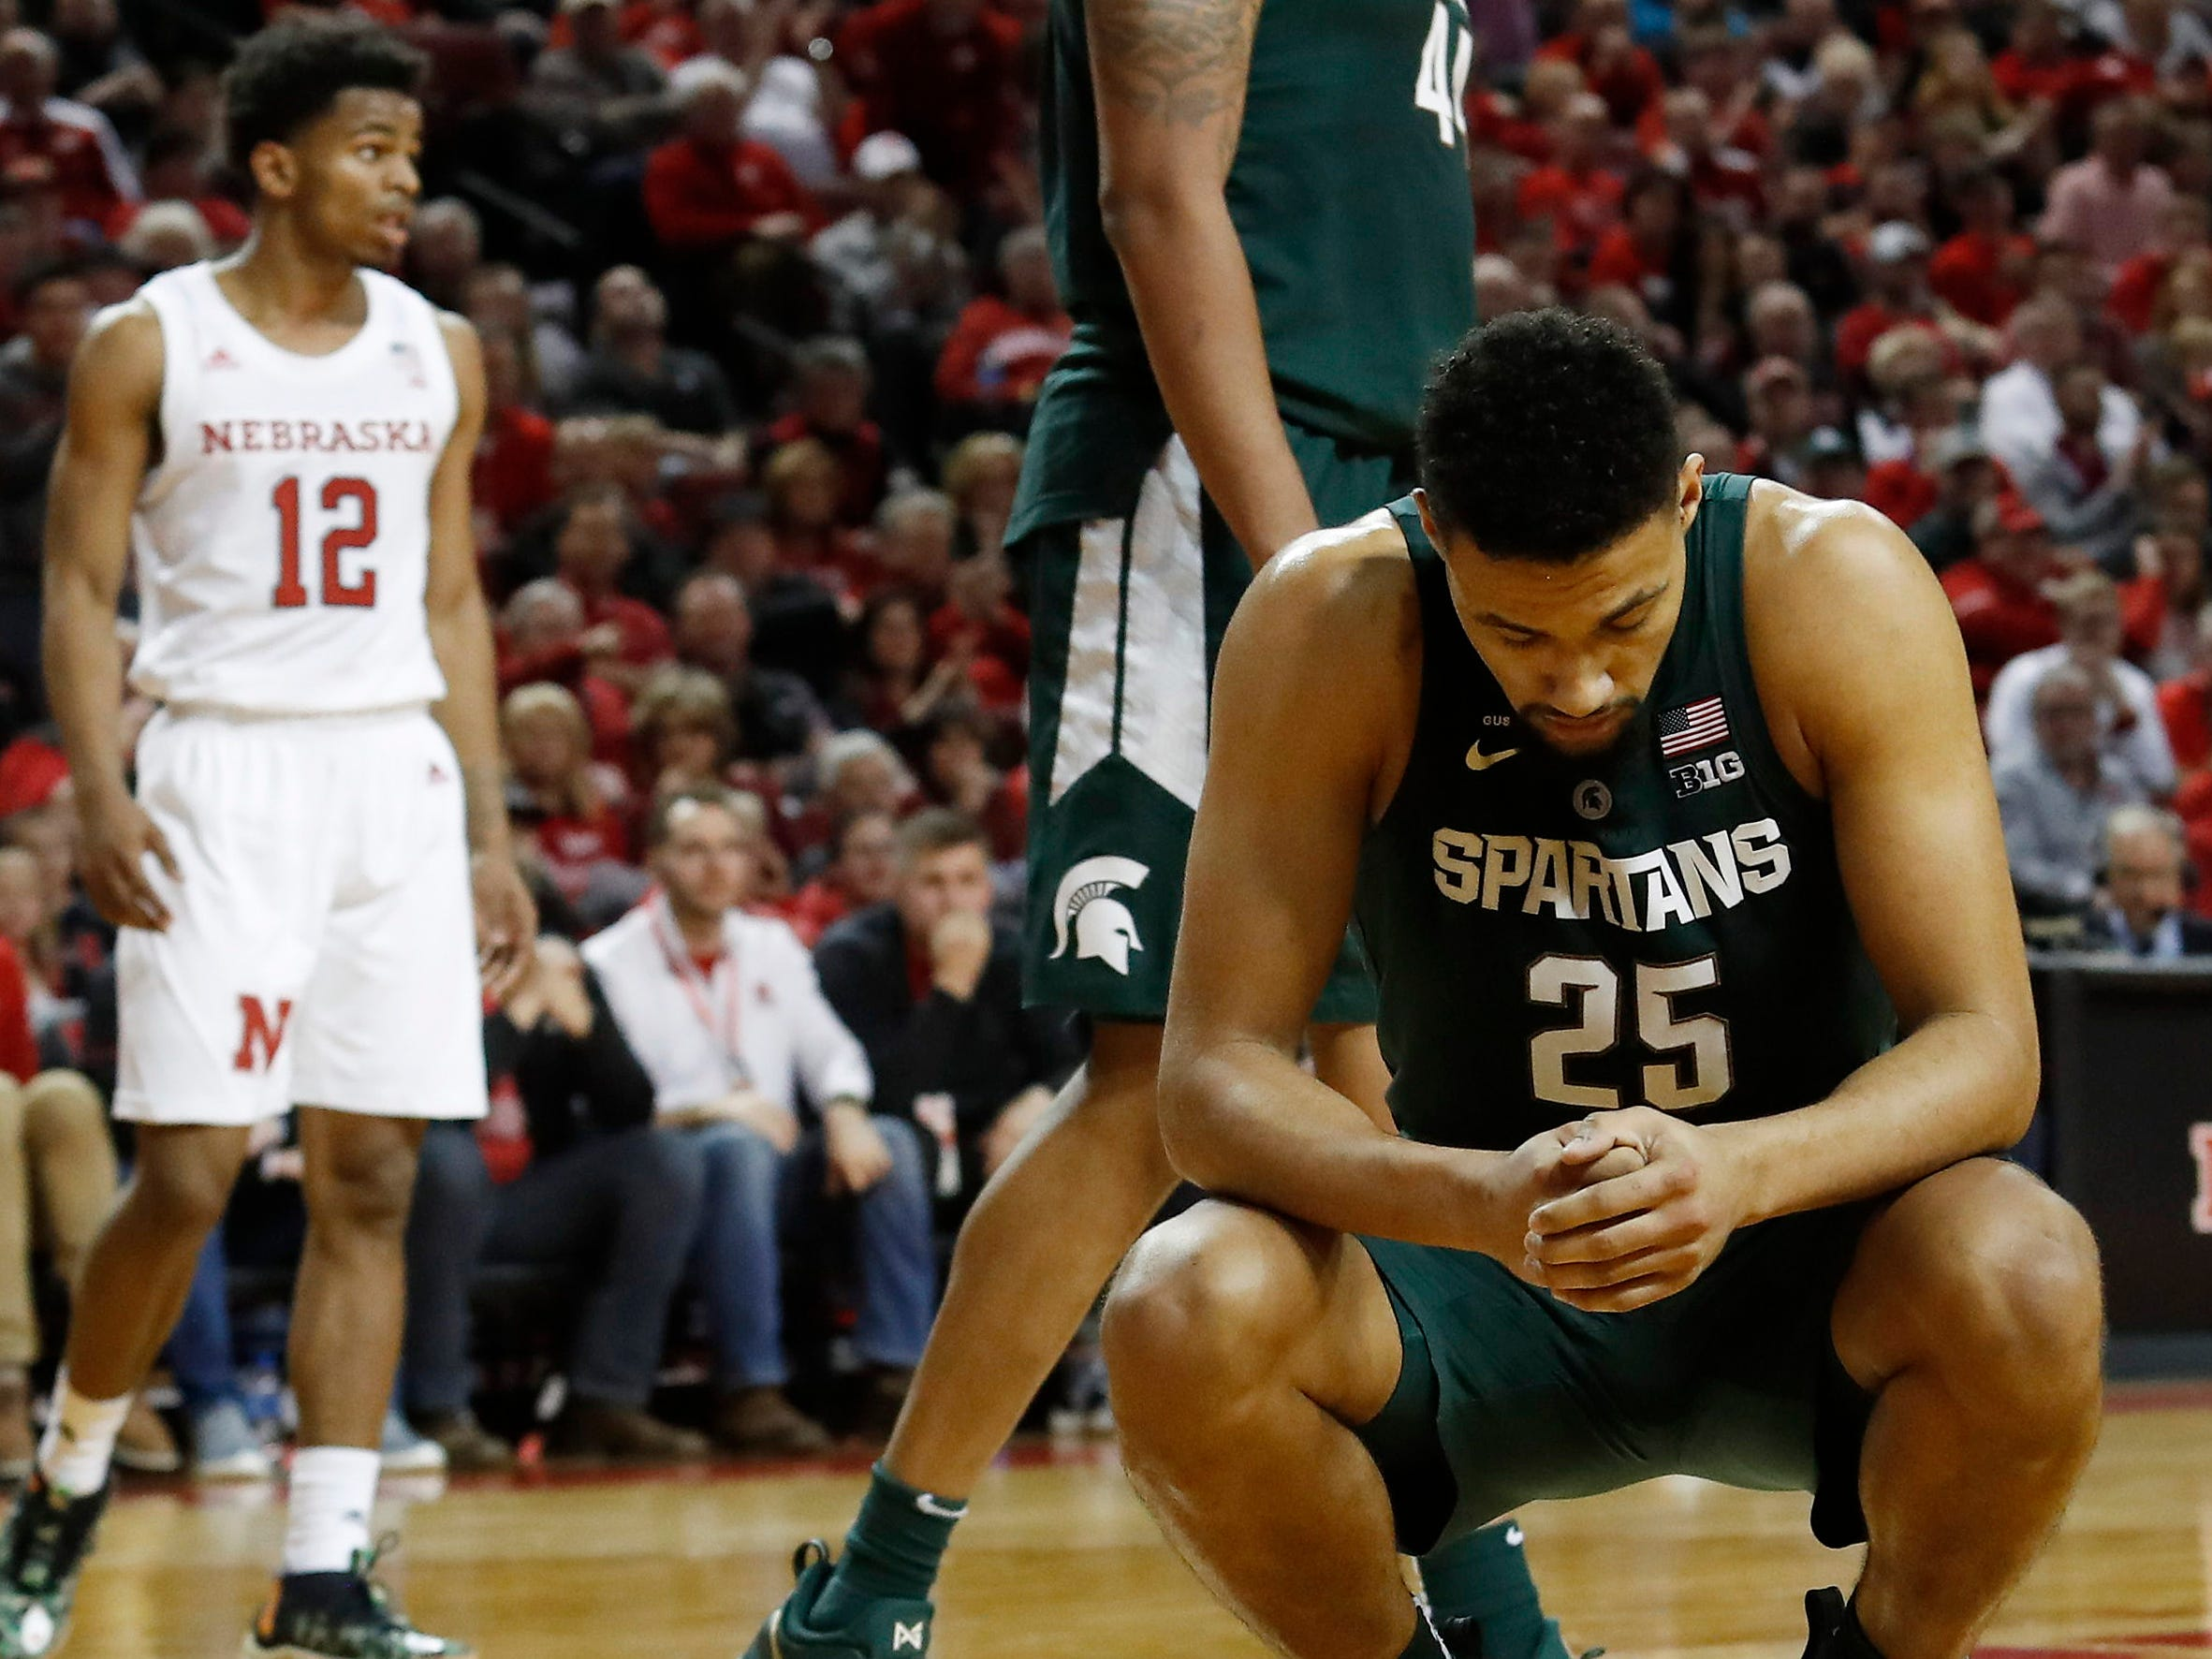 Michigan State Spartans forward Kenny Goins (25) reacts after a foul against the Nebraska Cornhuskers in the second half at Pinnacle Bank Arena. Michigan State won 70-64.